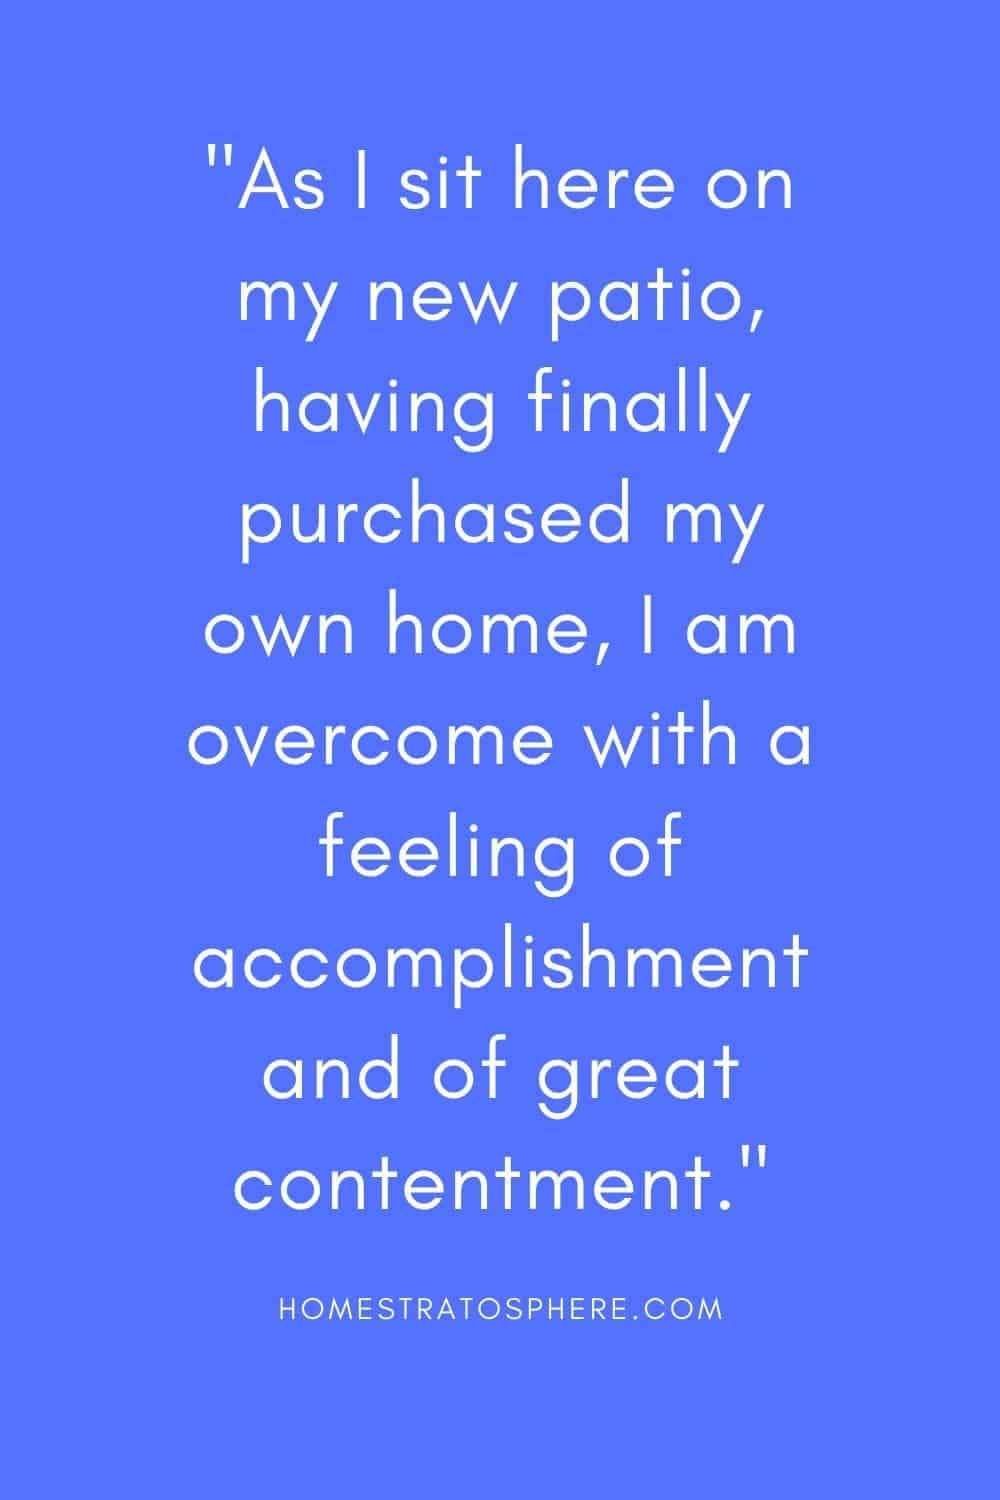 """As I sit here on my new patio, having finally purchased my own home, I am overcome with a feeling of accomplishment and of great contentment."""